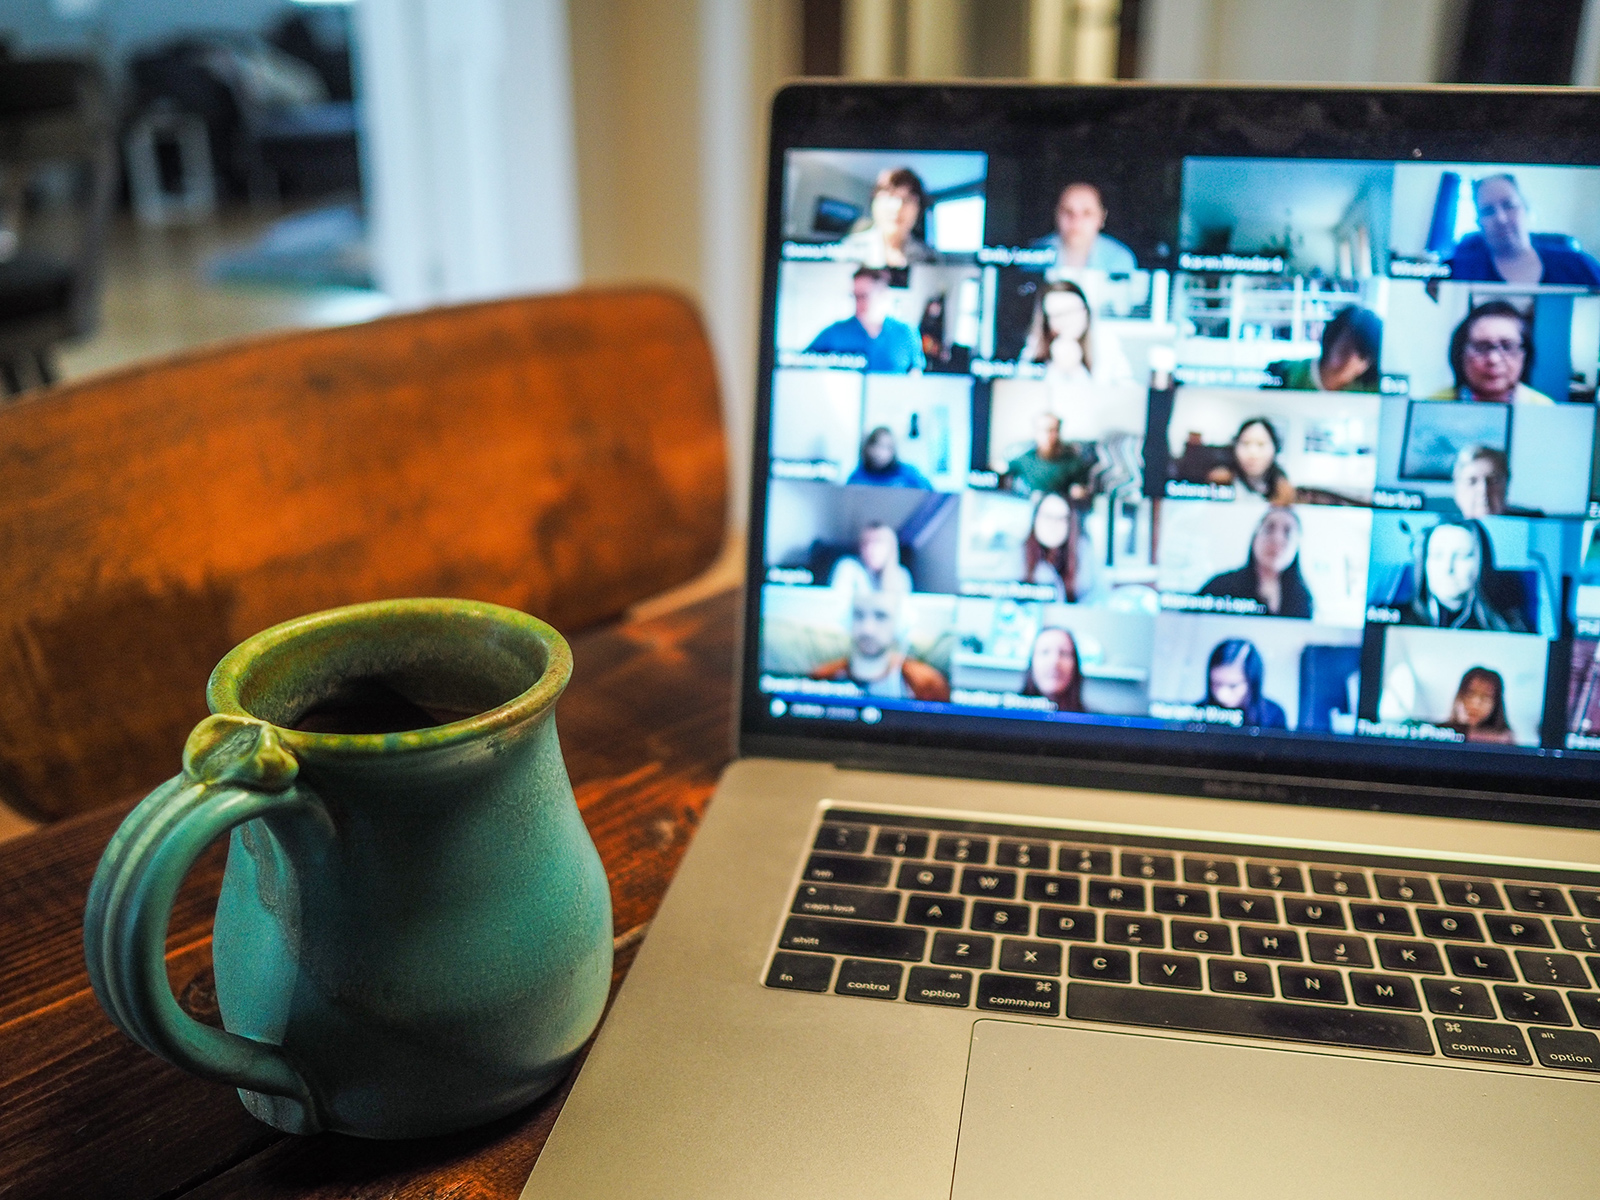 stock image of a computer running a virtual meeting